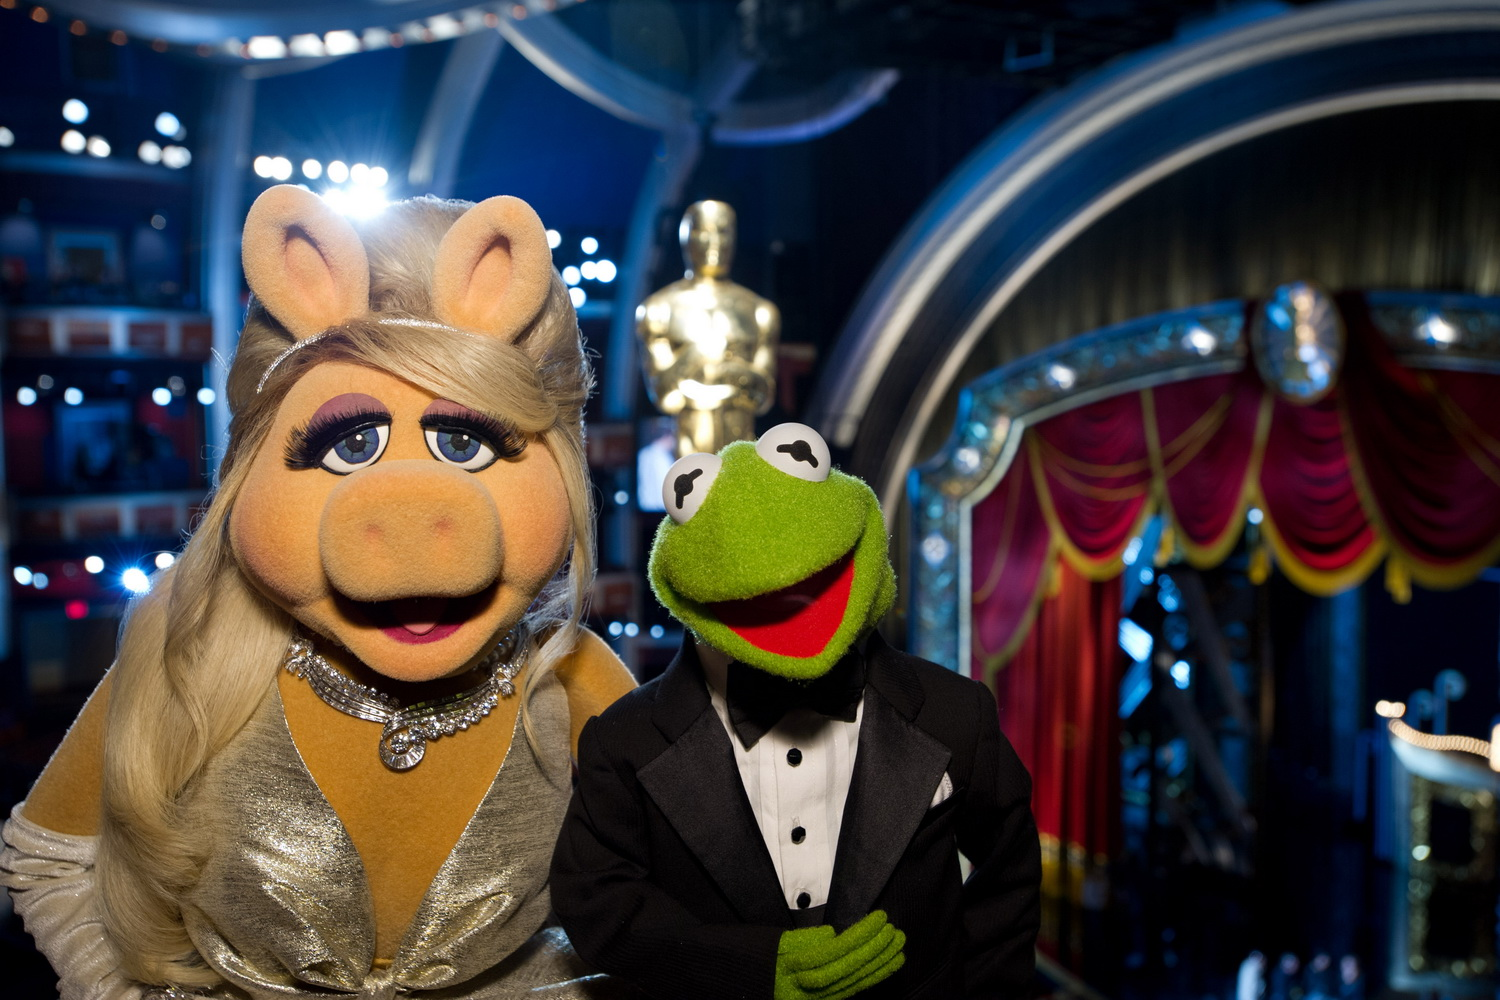 http://www.chipandco.com/muppets-invade-oscars-66667/